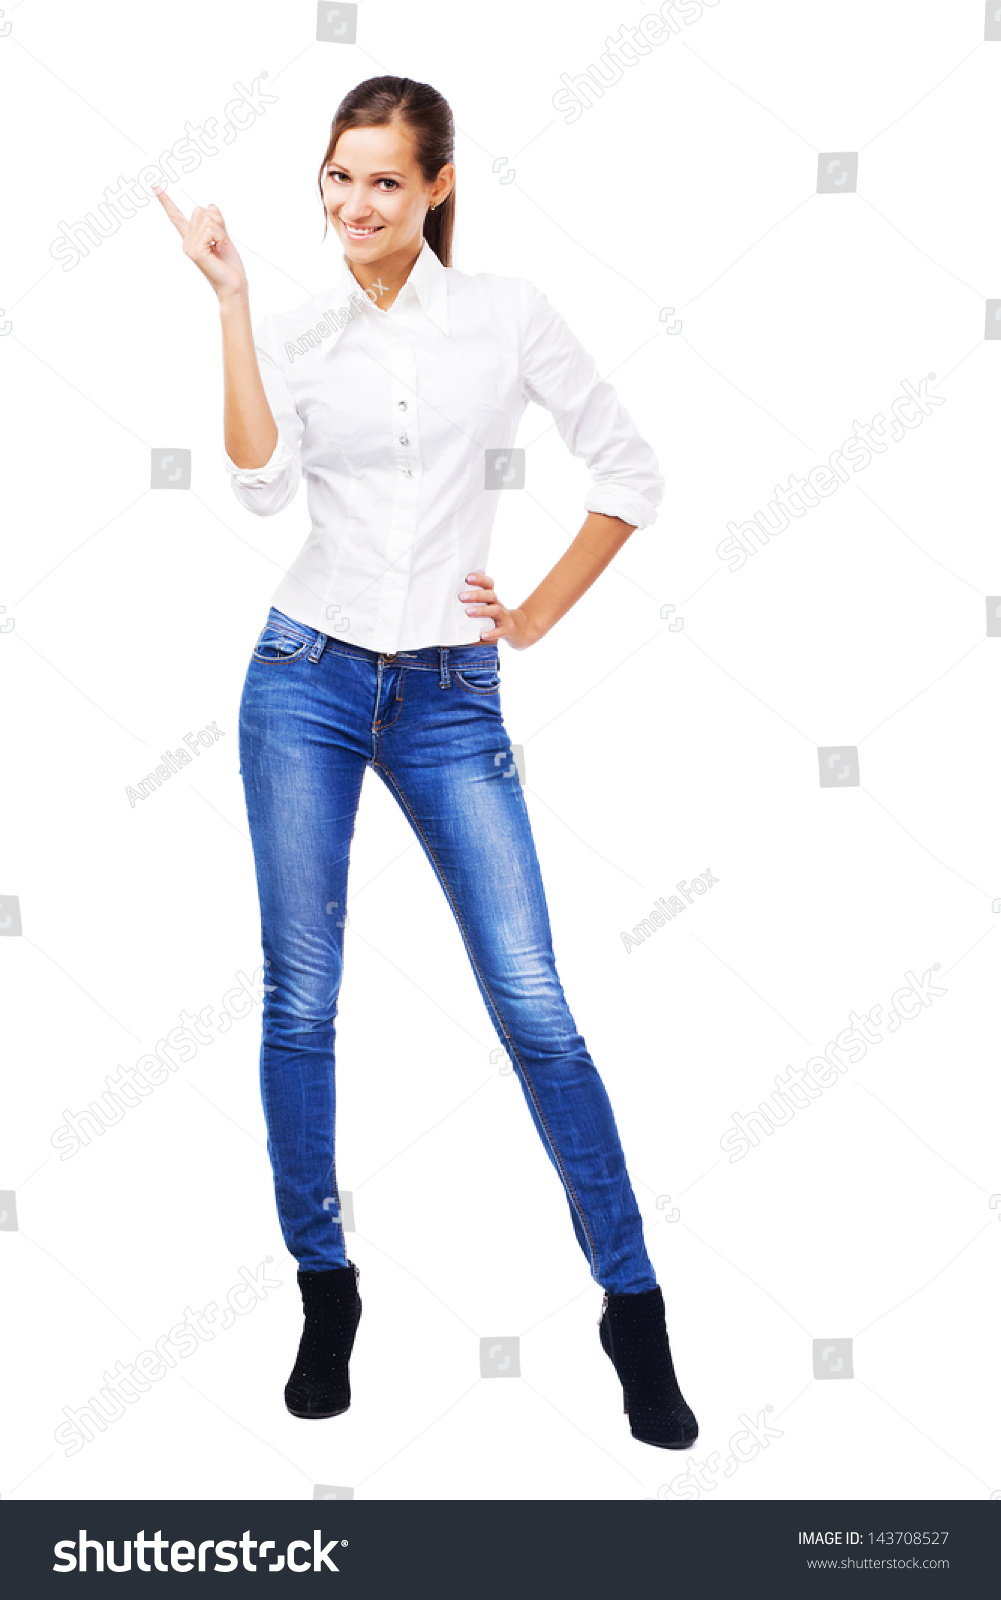 Shirt And Jeans For Women